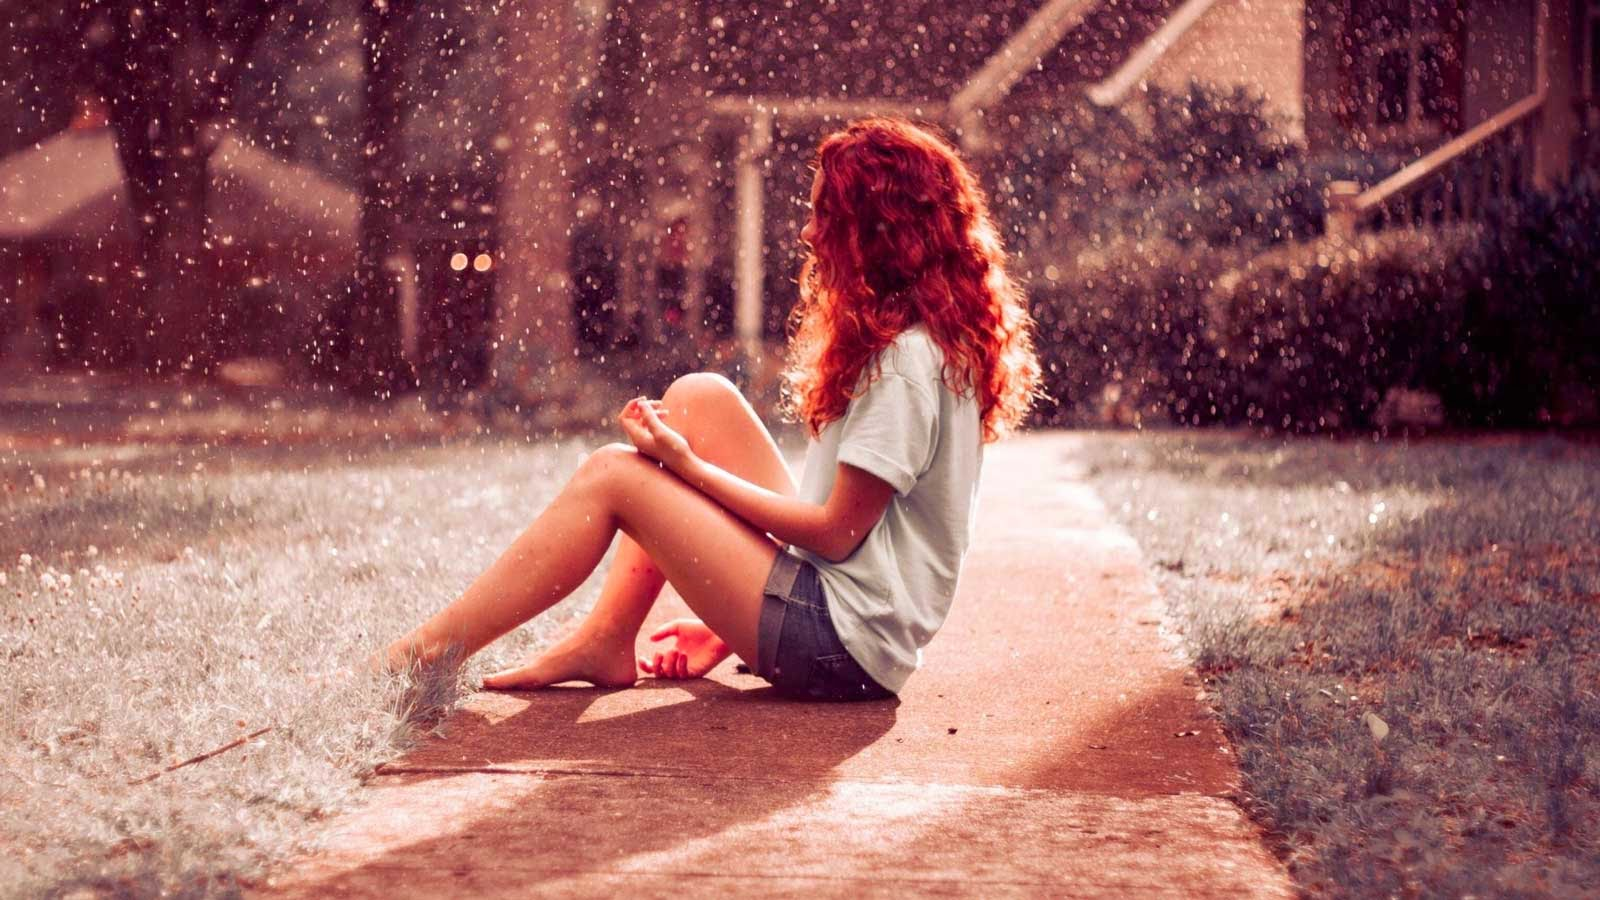 Red Hair Female Enjoying Rain Water